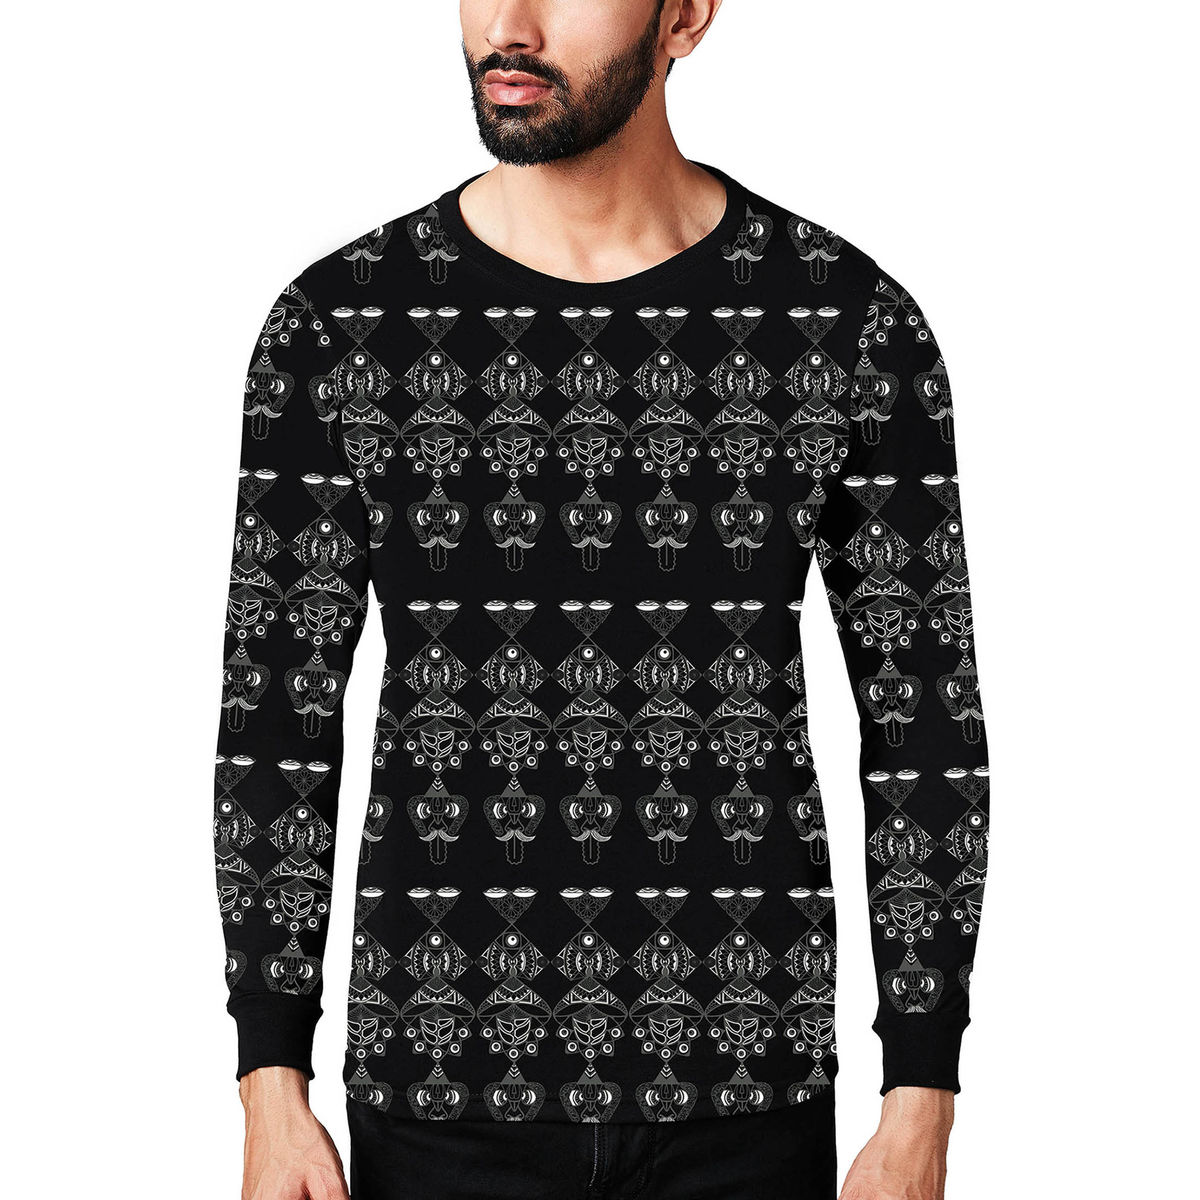 9a7491066 Monkey Mind Full Sleeve T-shirt - Psychedelic printed long sleeve t-shirt